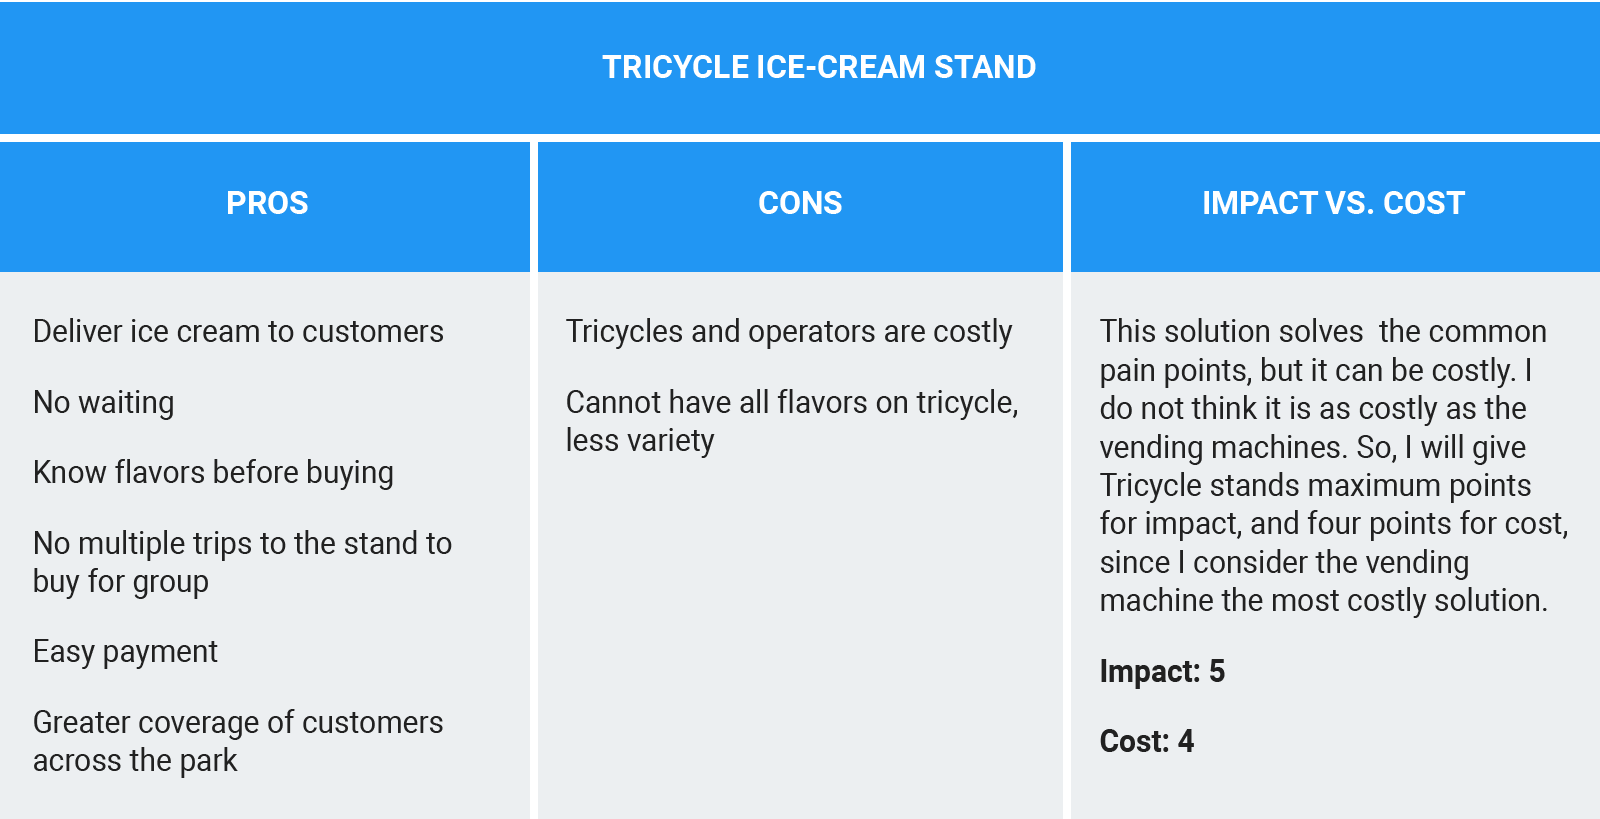 Tracking the pros and cons for the Tricycle Ice-cream Stand idea and evaluating how the idea scores relative to impact vs. cost